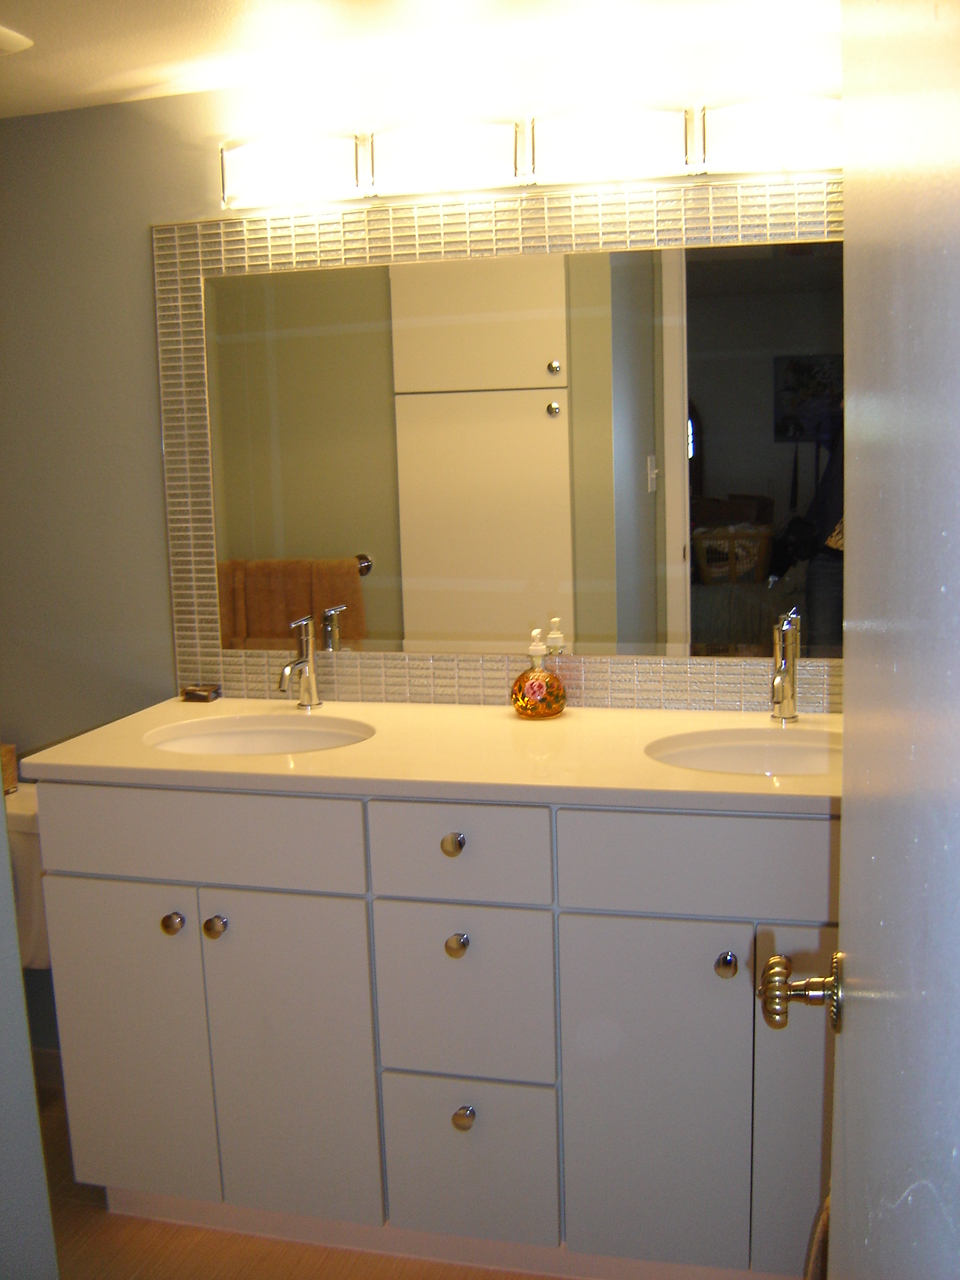 Litwin Guest Bath Remodel Denver Co Schuster Design Studio Inc Overland Park Ks Kansas